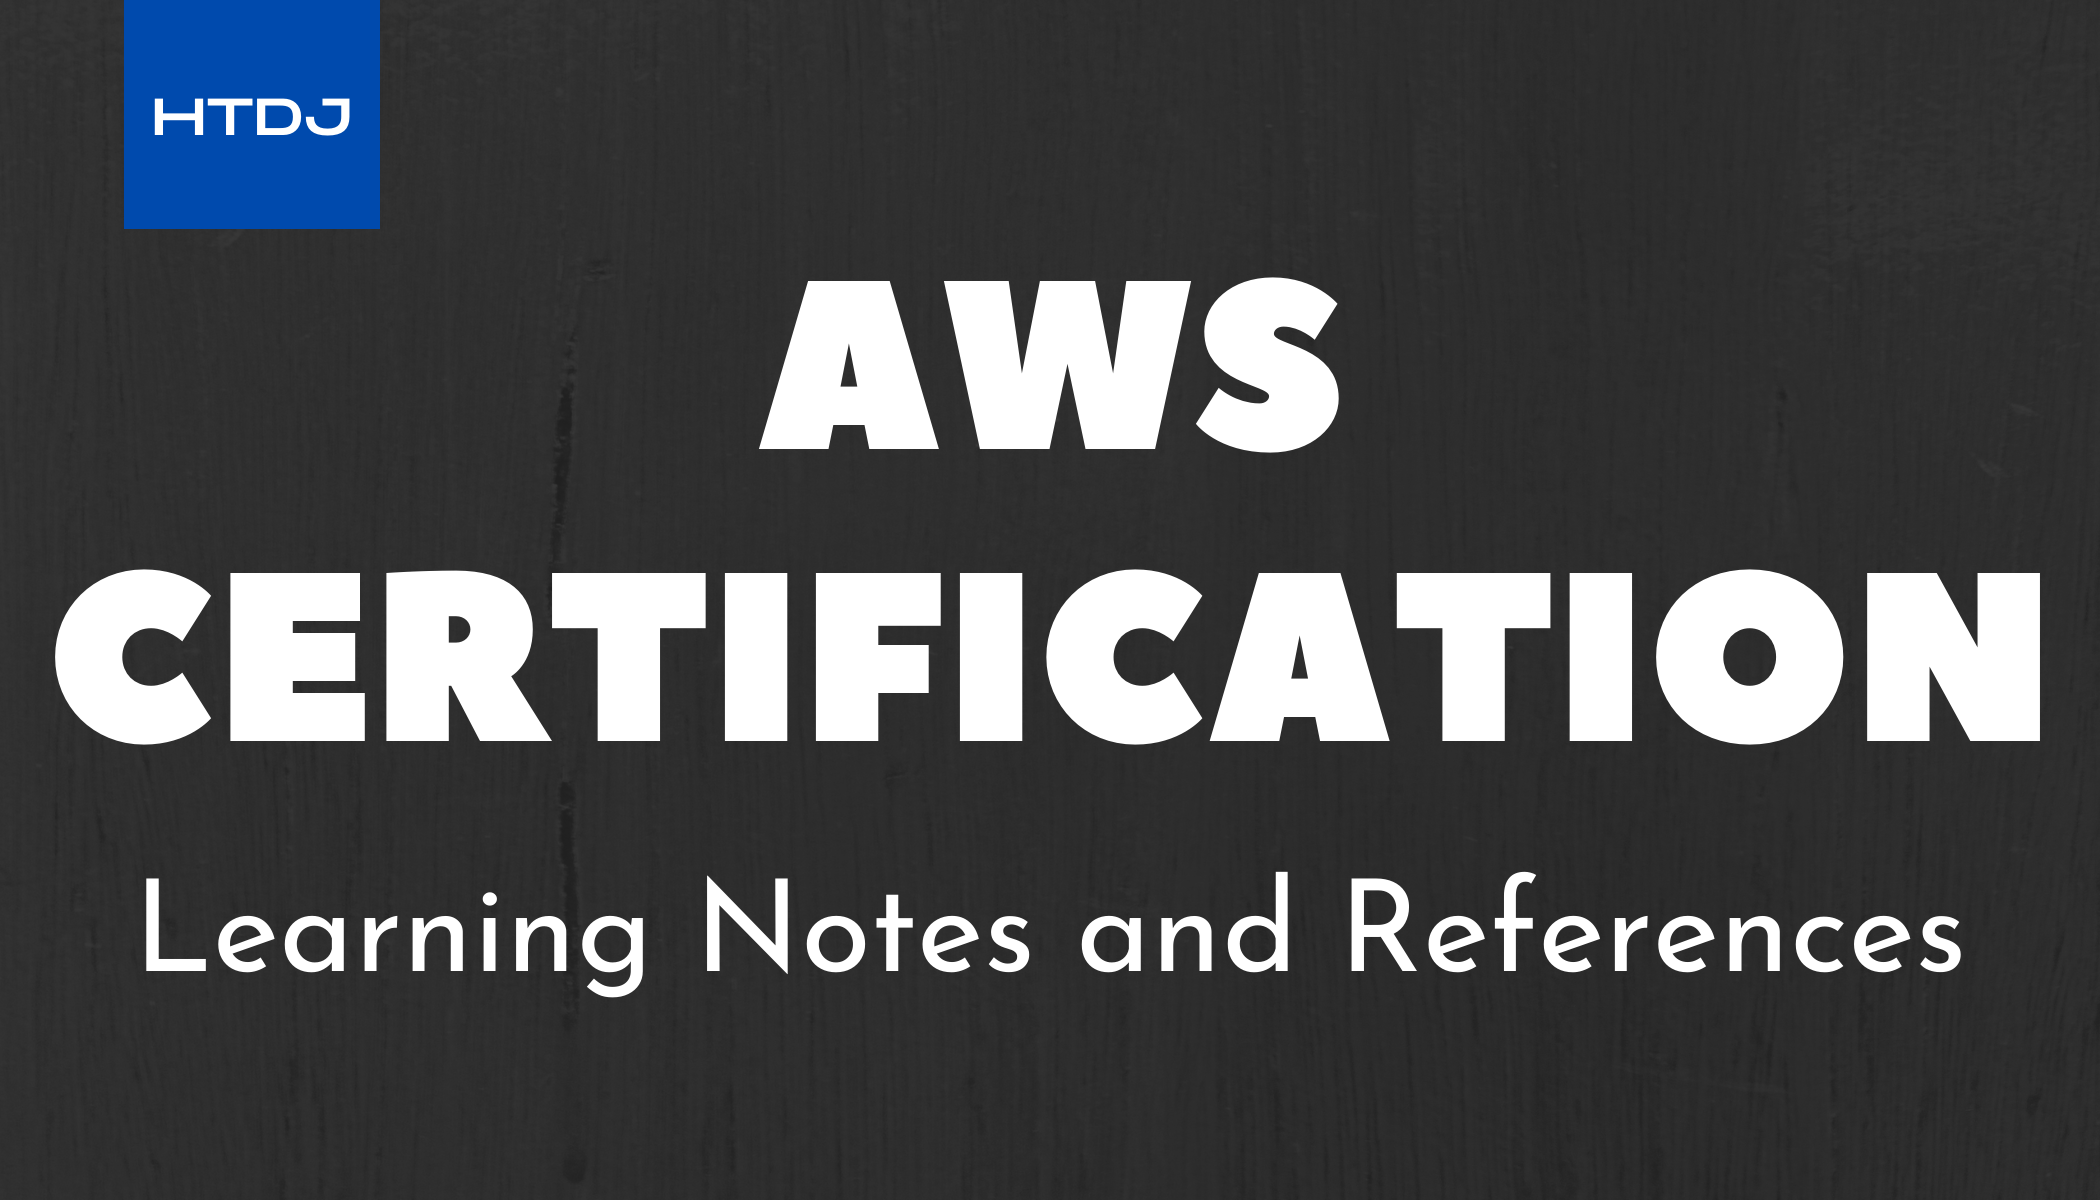 AWS Certification